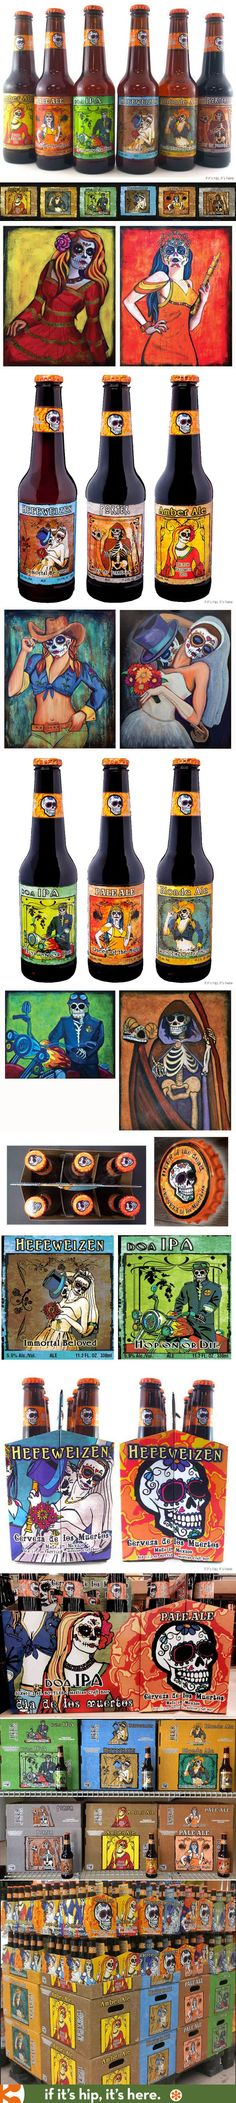 Day of The Dead Beer label designs use the art of Sean Wells. Learn more at http://www.ifitshipitshere.com/spooky-beer-branding-wine-bottle-designs-meurto-motif/